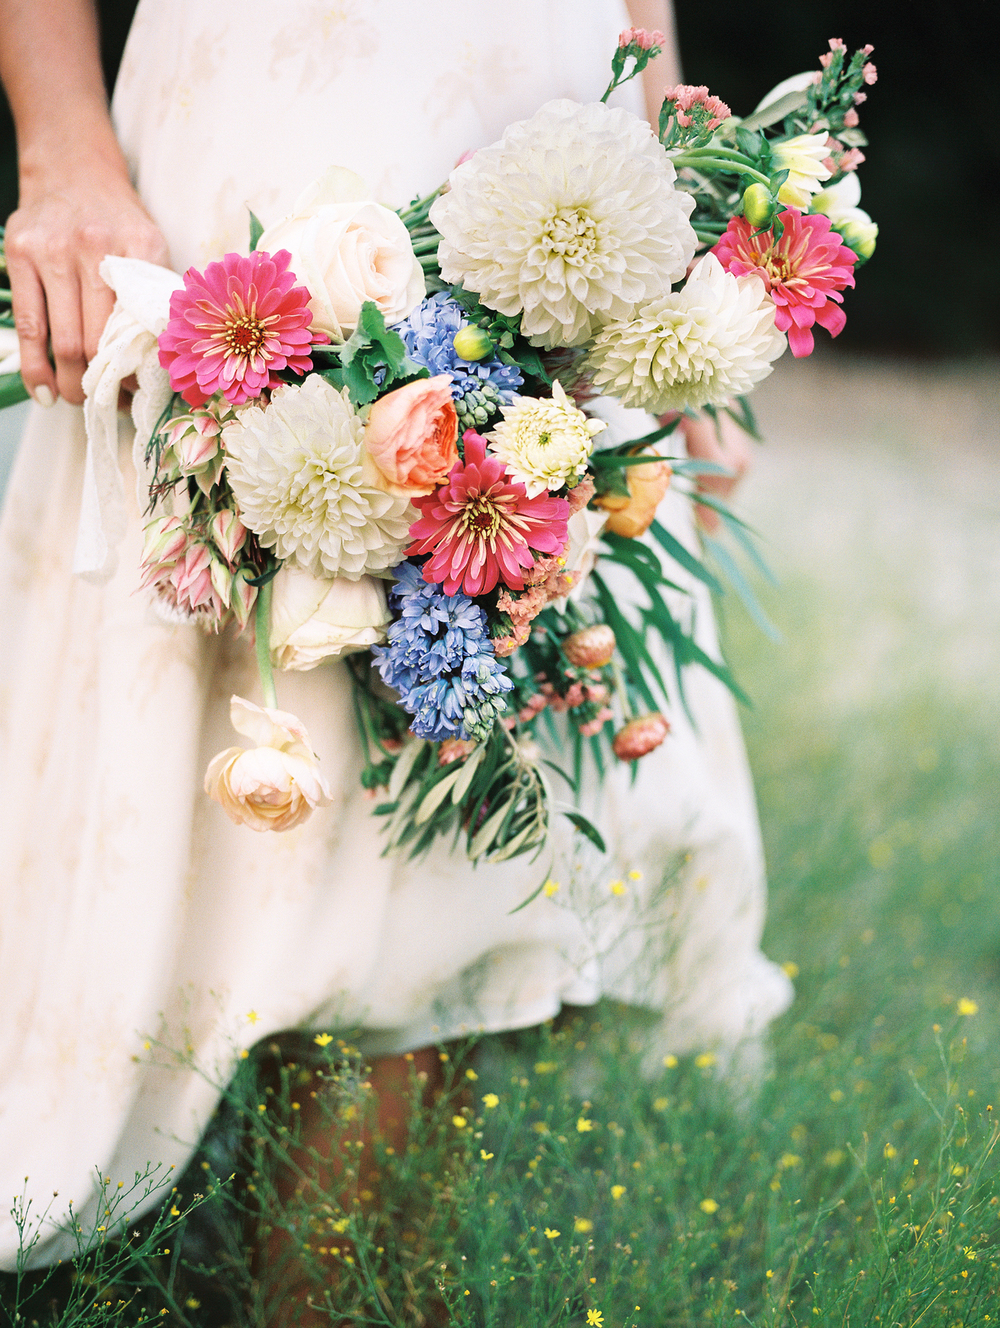 florals by Everly Alaine Florals // photo by Danielle M. Sabol